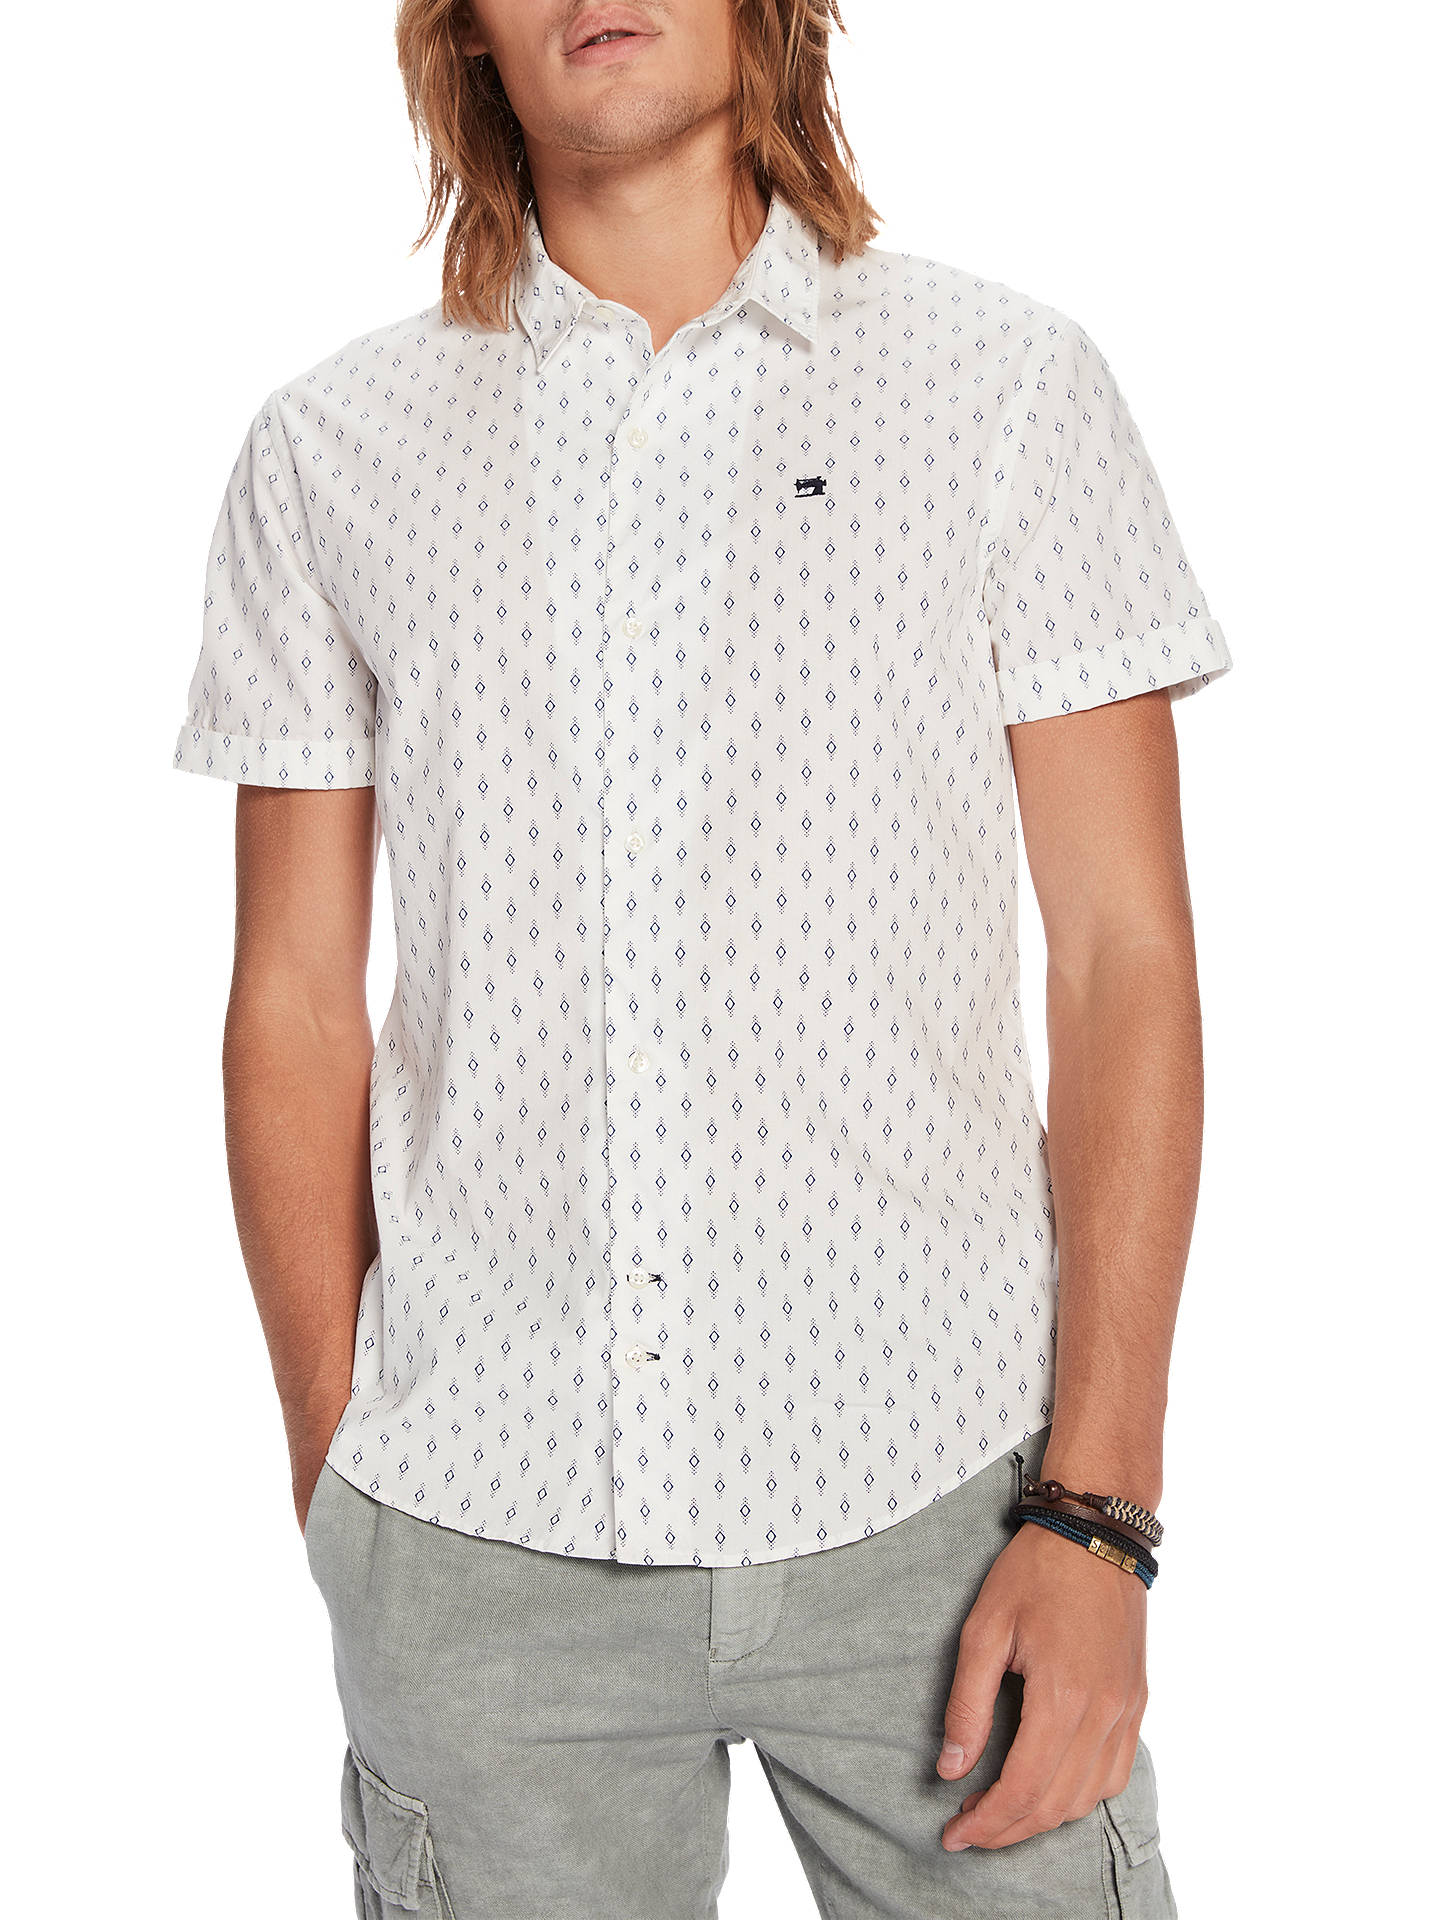 Buy Scotch & Soda Short Sleeve Diamond Print Shirt, White, S Online at johnlewis.com